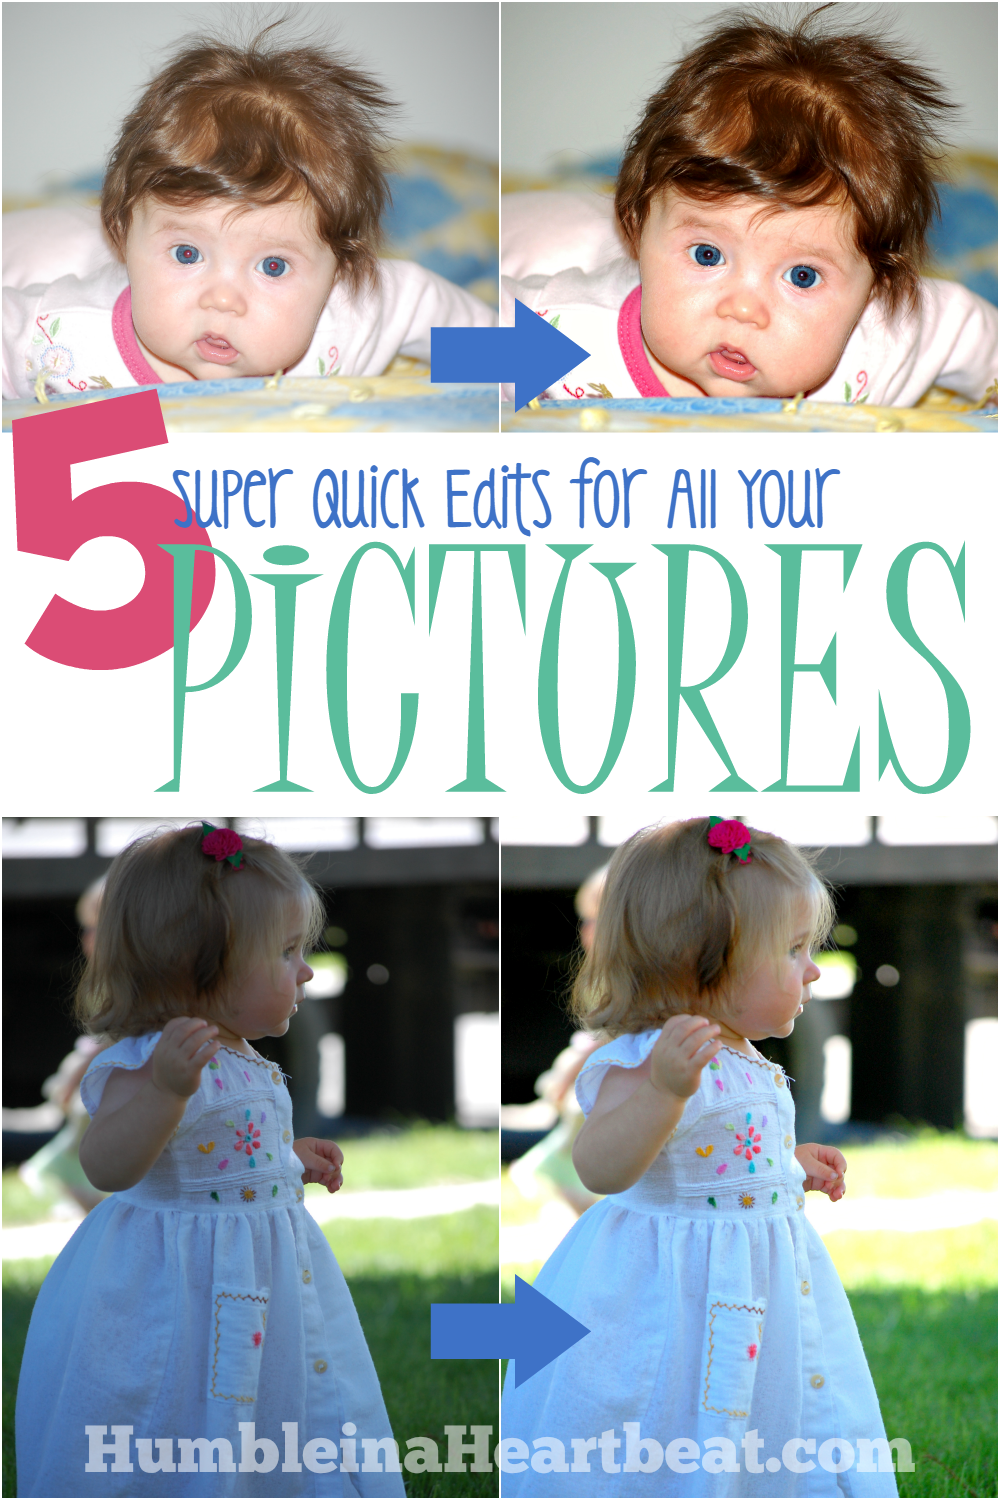 Most pictures only need these 5 quick edits. Find out what they are and how to do them in PicMonkey so you can use more of your pictures for photo projects!